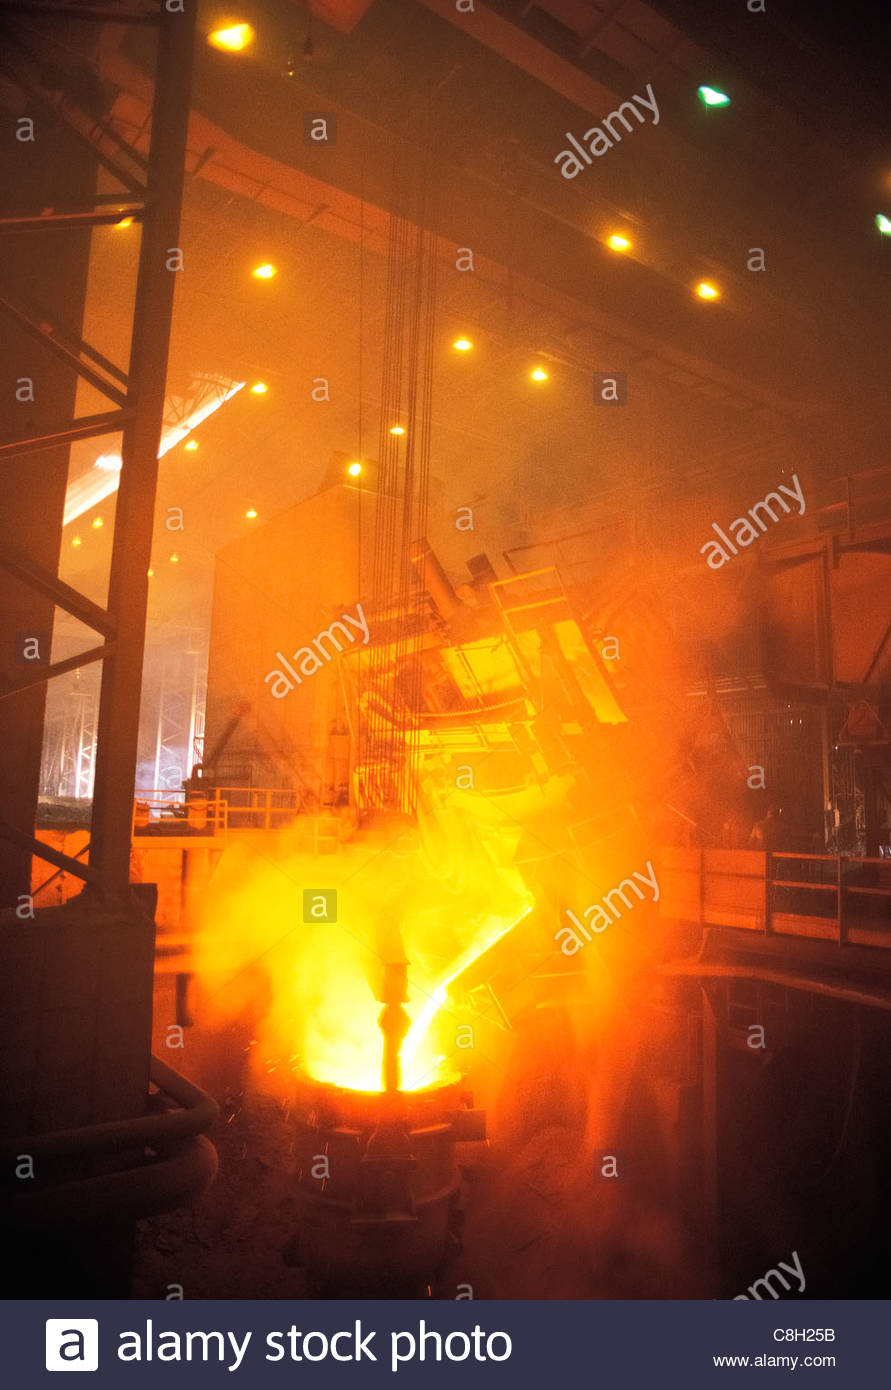 Molten metal pouring out of the blast furnace at a steel mill. Stock Photo